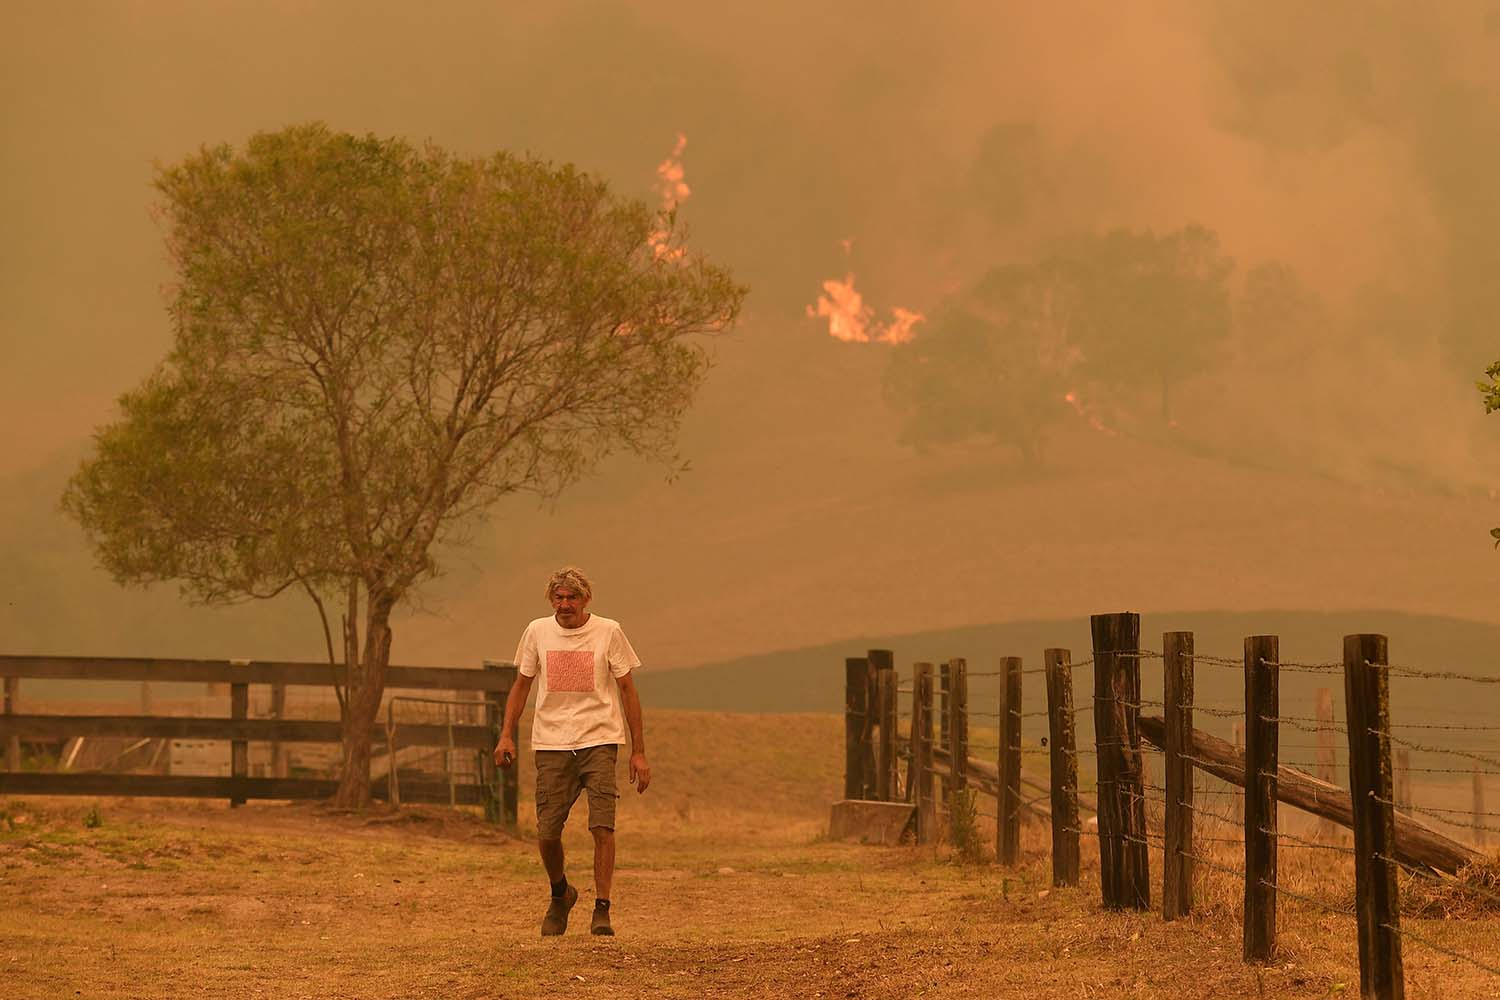 An Australian walks on a farm as flames from devastating bush fires approach near the town of Taree, north of Sydney, on Nov. 14. WILLIAM WEST/AFP via Getty Images